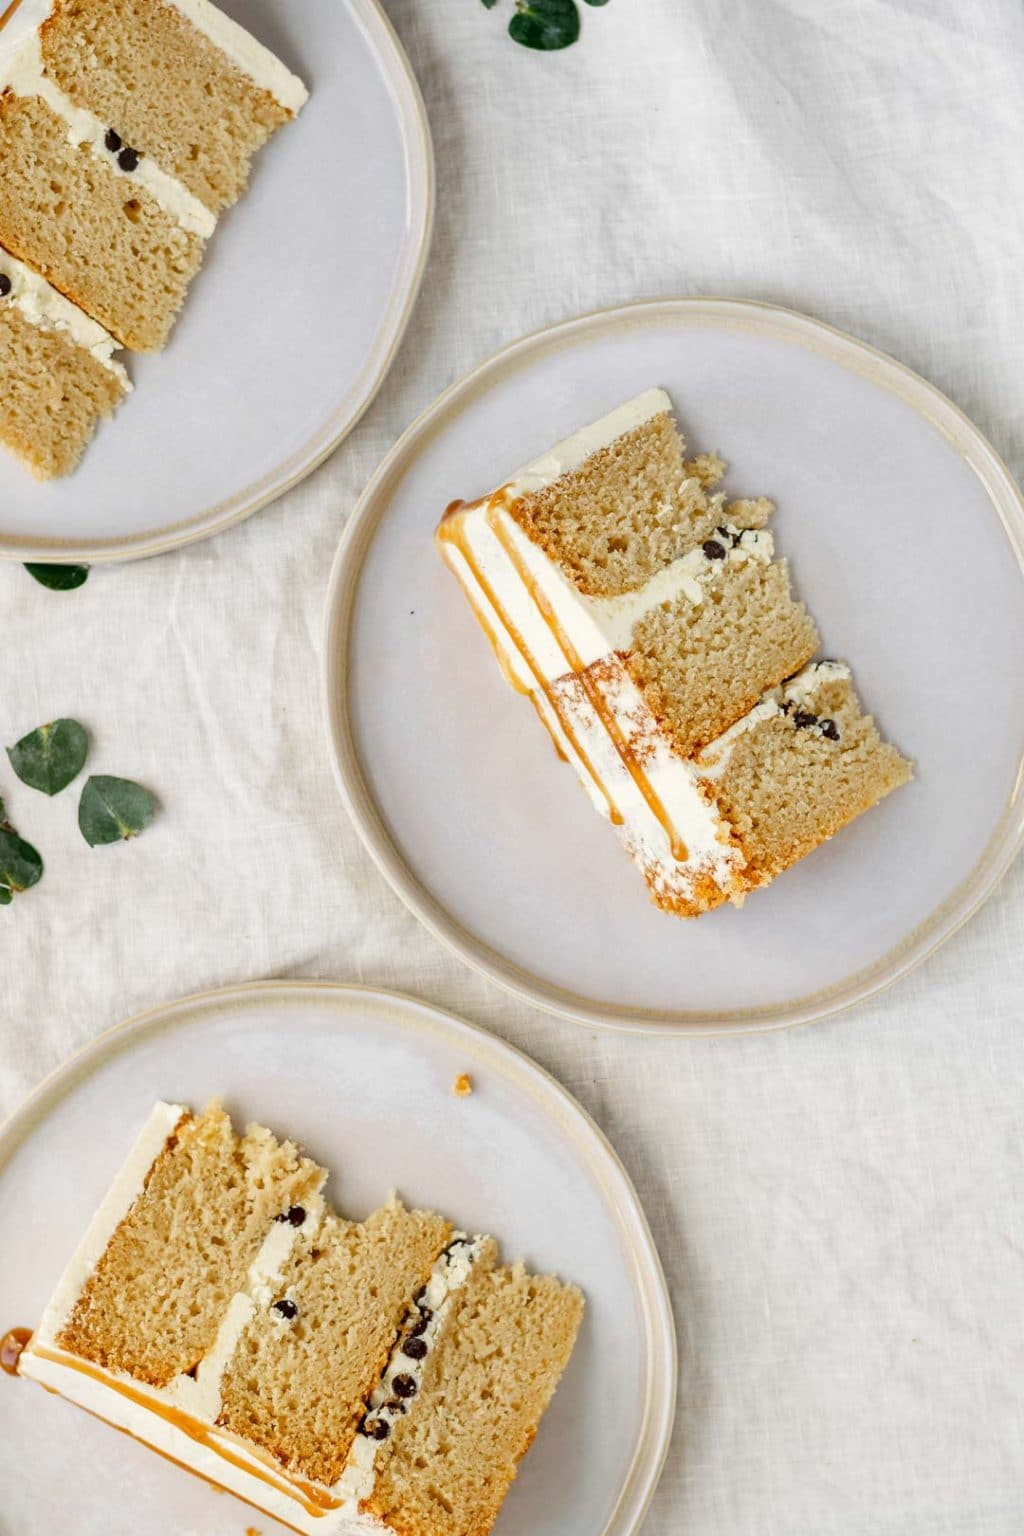 overhead view of the vegan vanilla cake slices